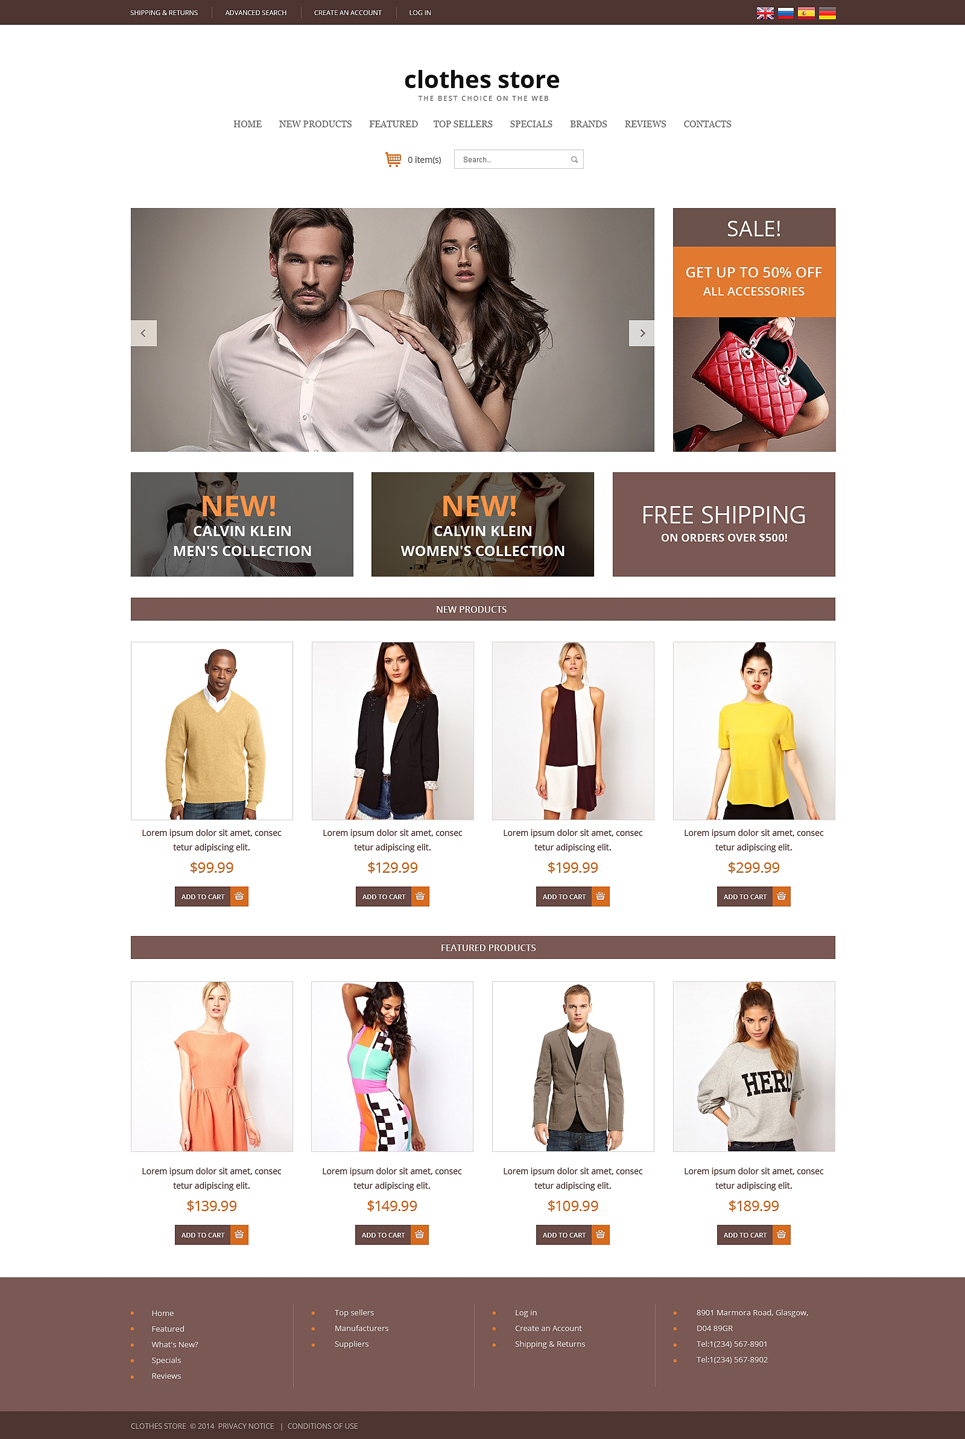 Cool Clothes Store OSCommerce Template Design